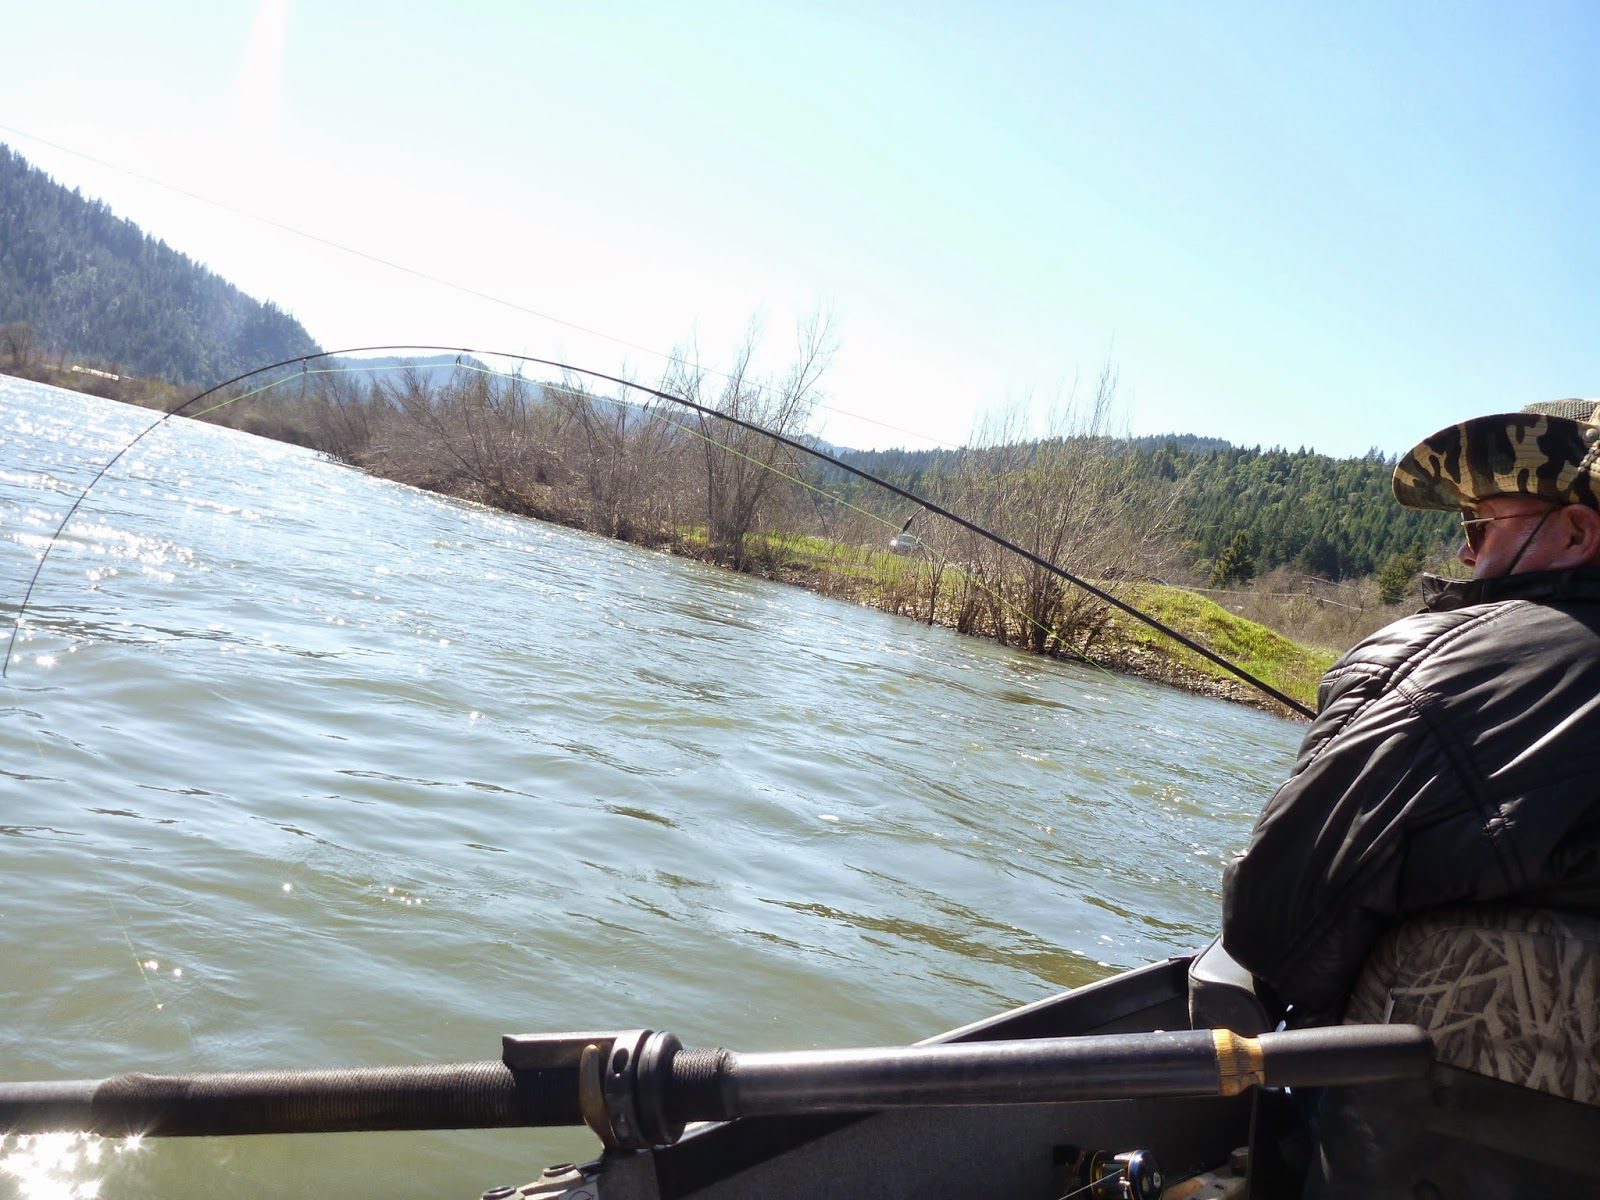 Klamath River Fishing.